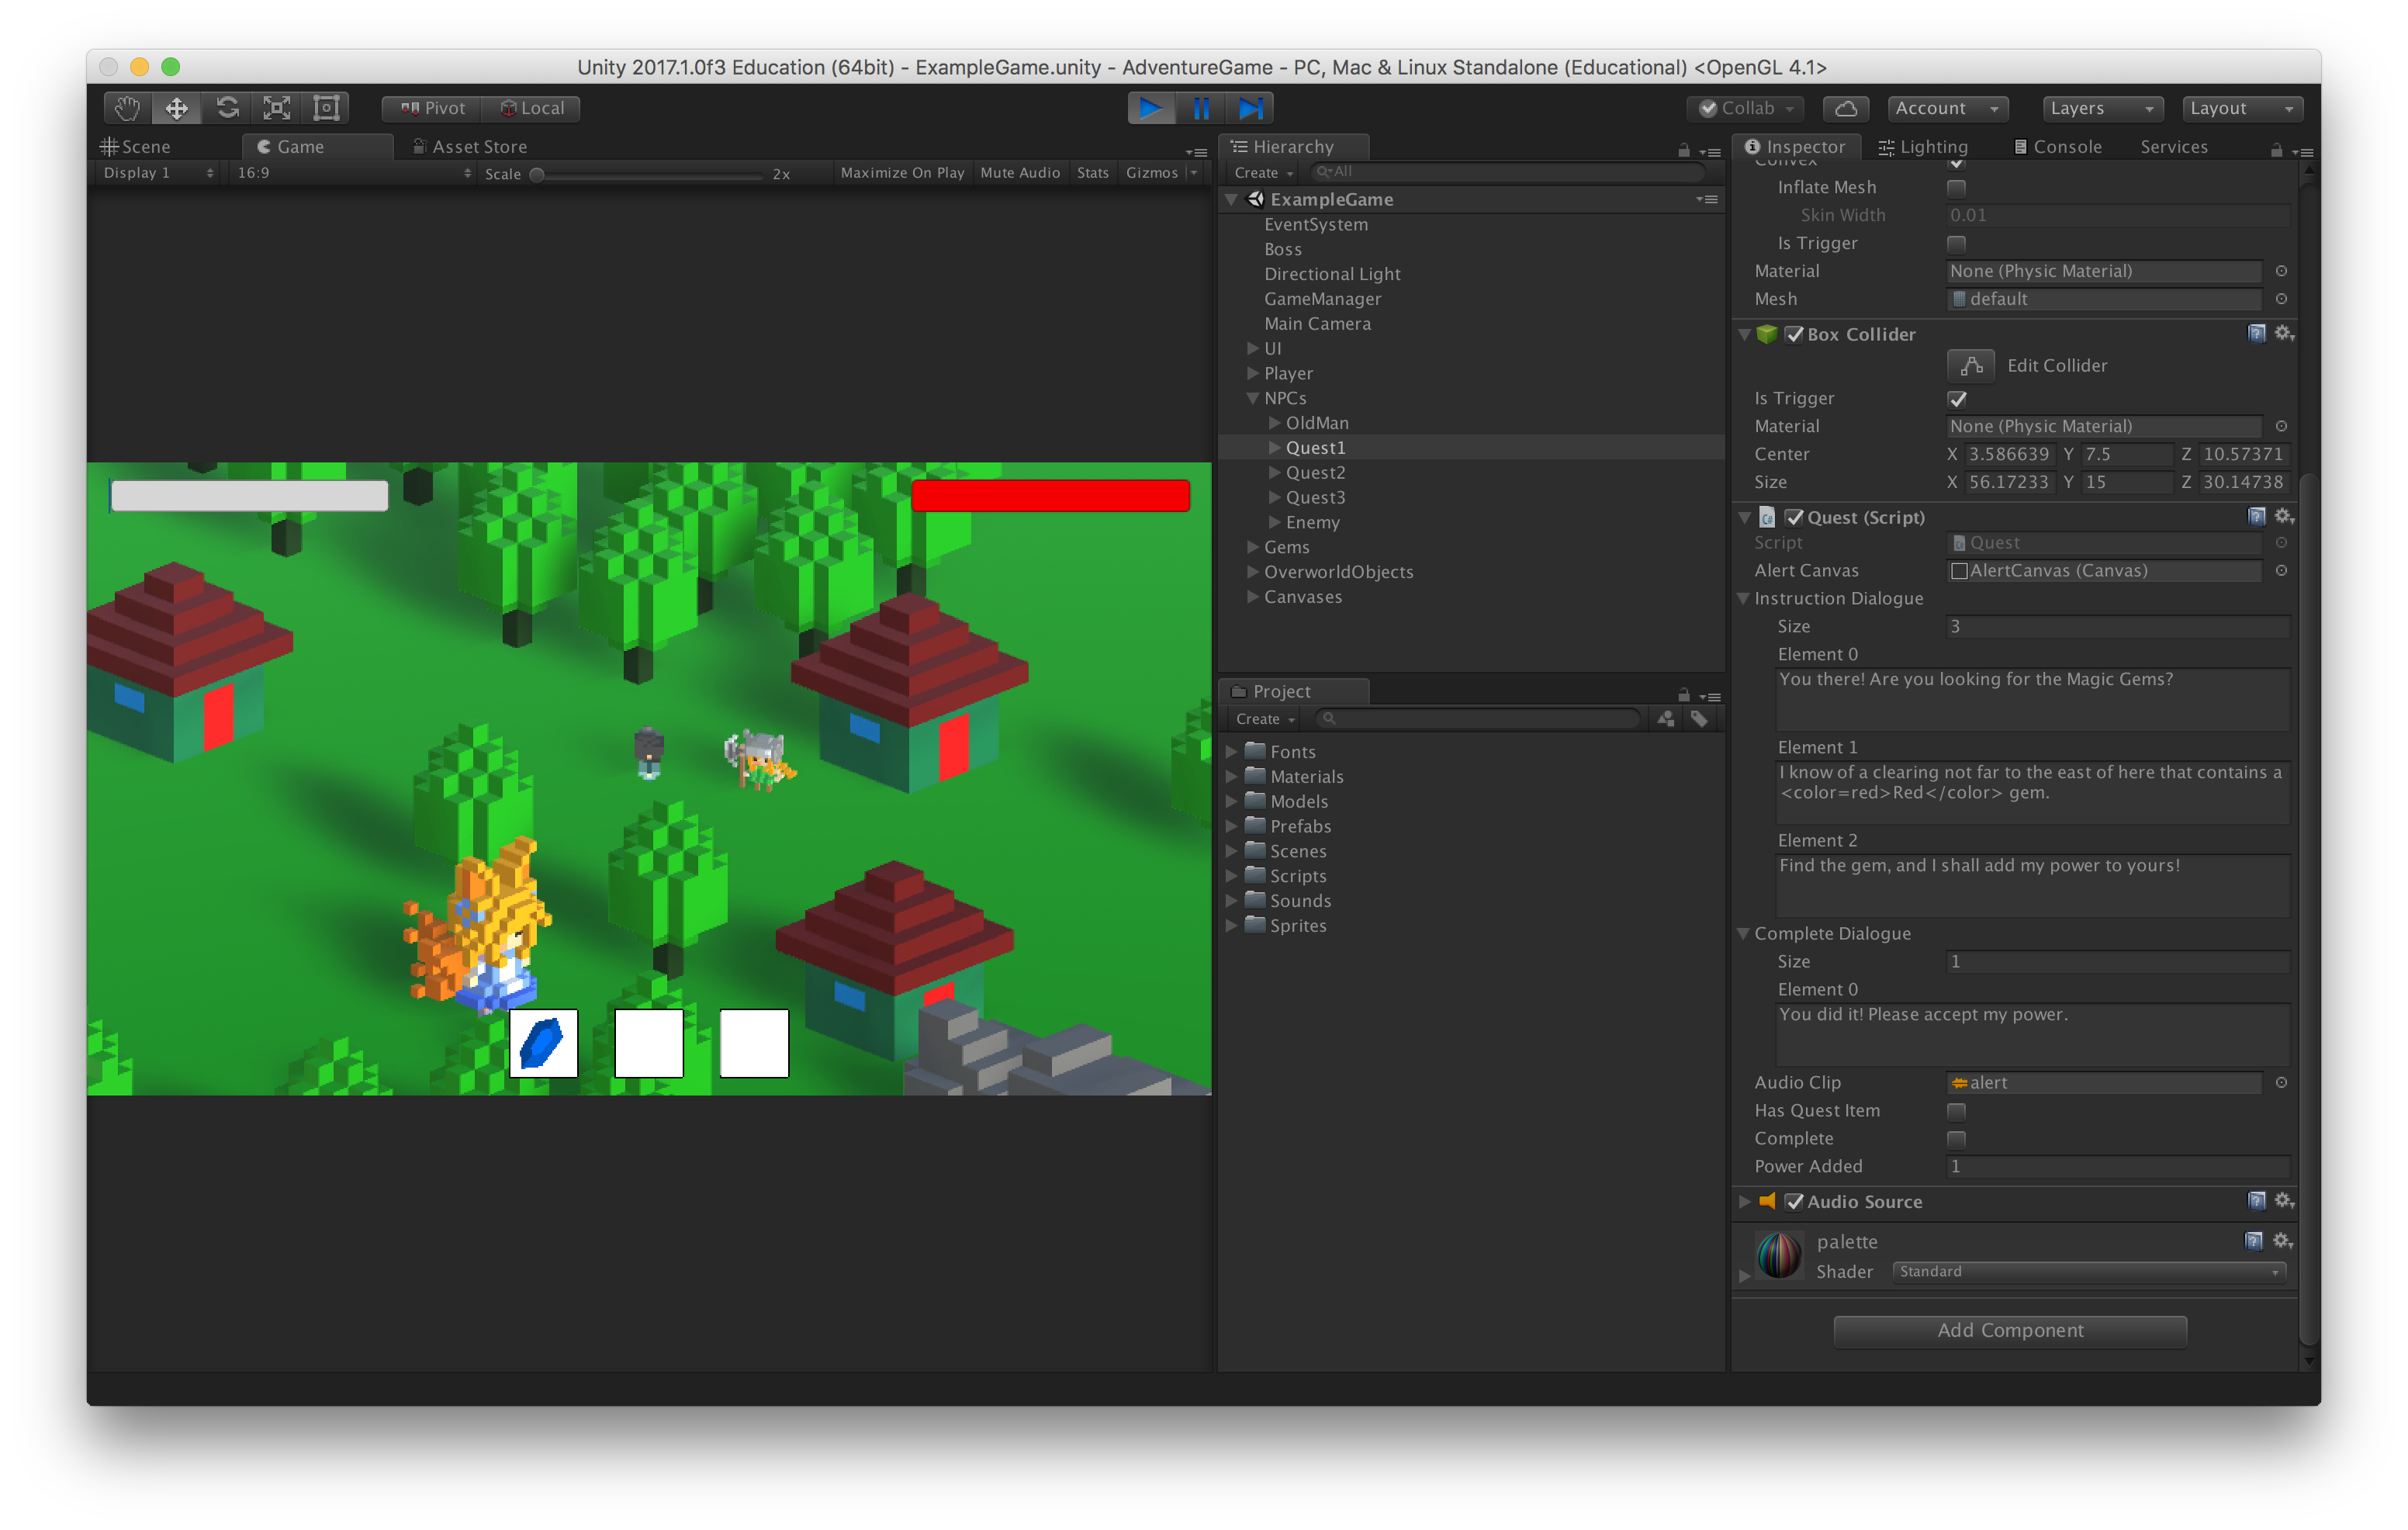 Unity Game Design: 3D Platformer 2 Day (Ages 10-12) – Museum of